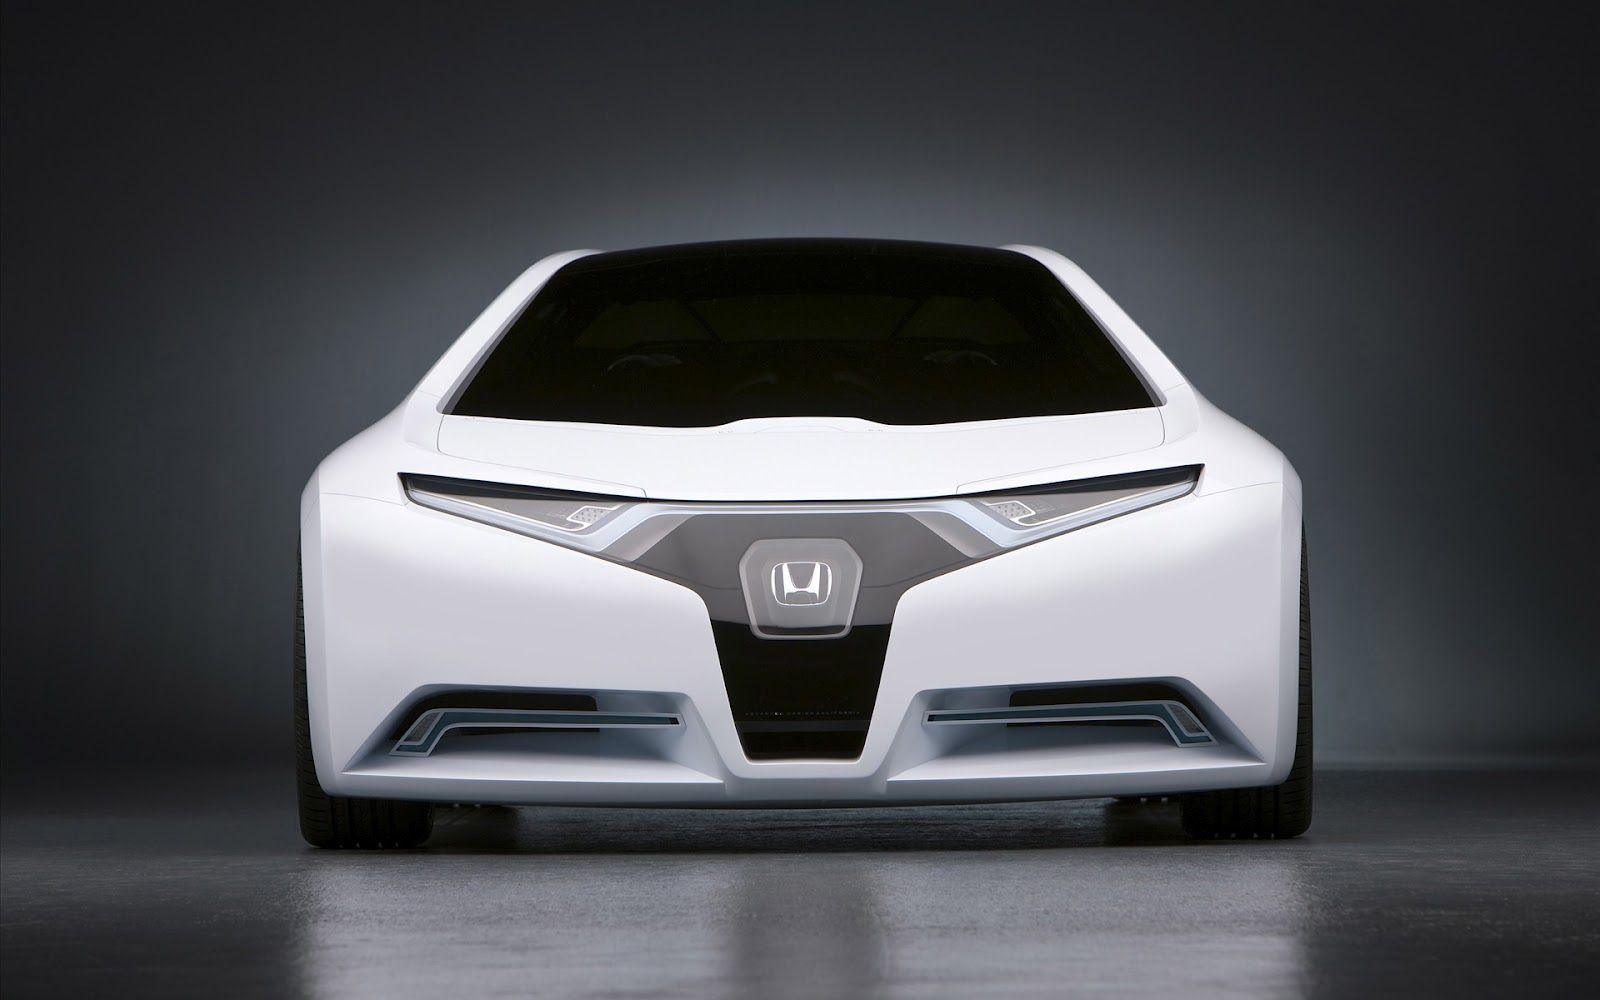 Beautiful Concept Car From HONDA